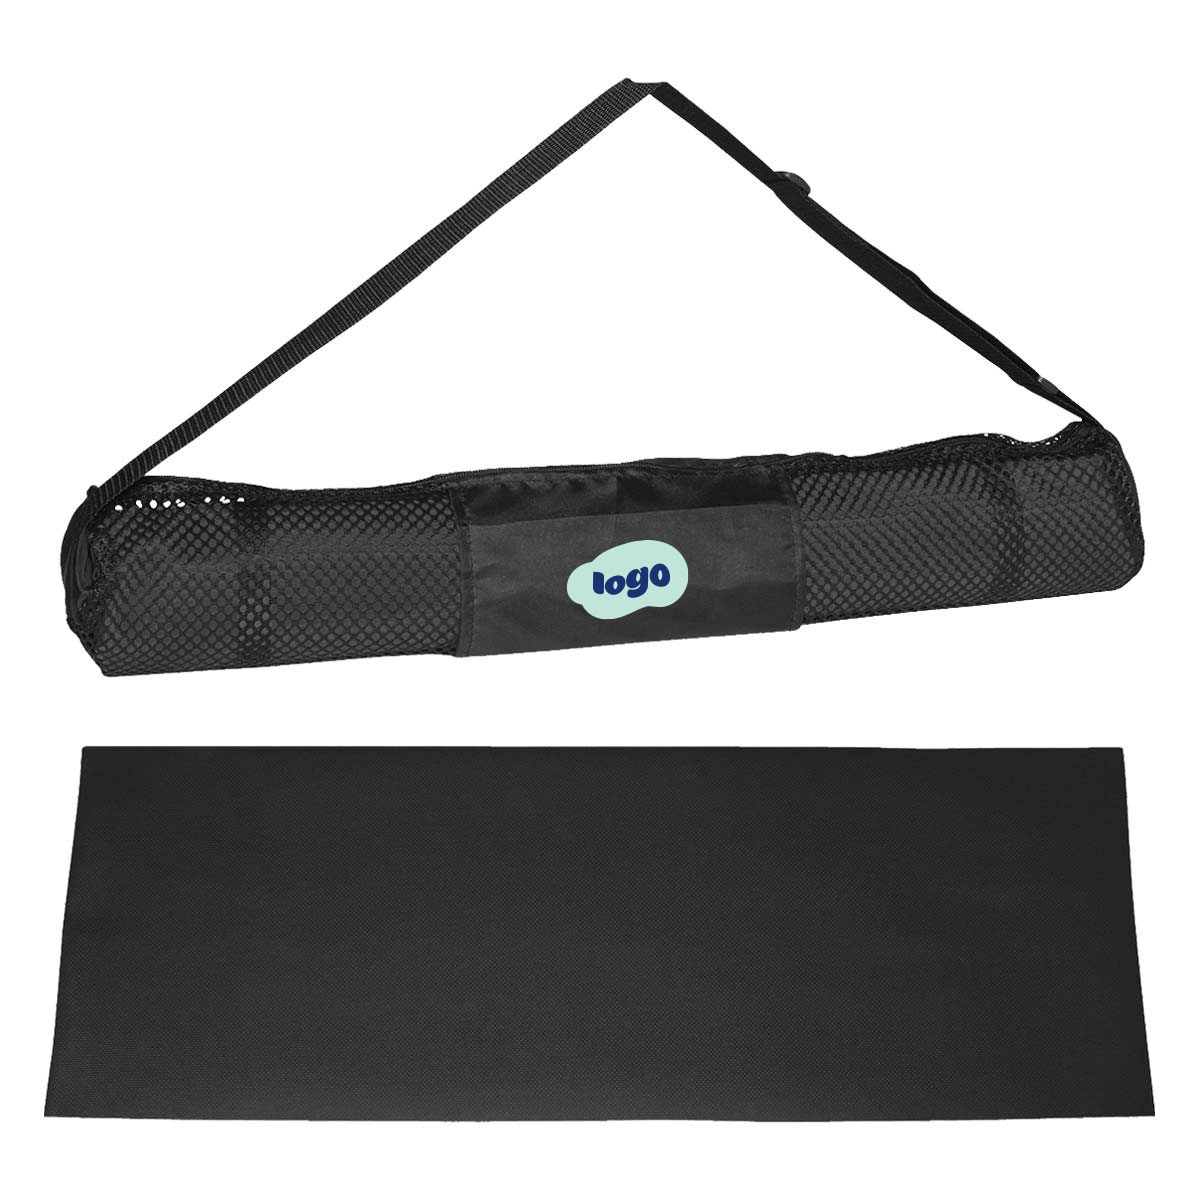 269178 savasana yoga mat and case two color one location imprint